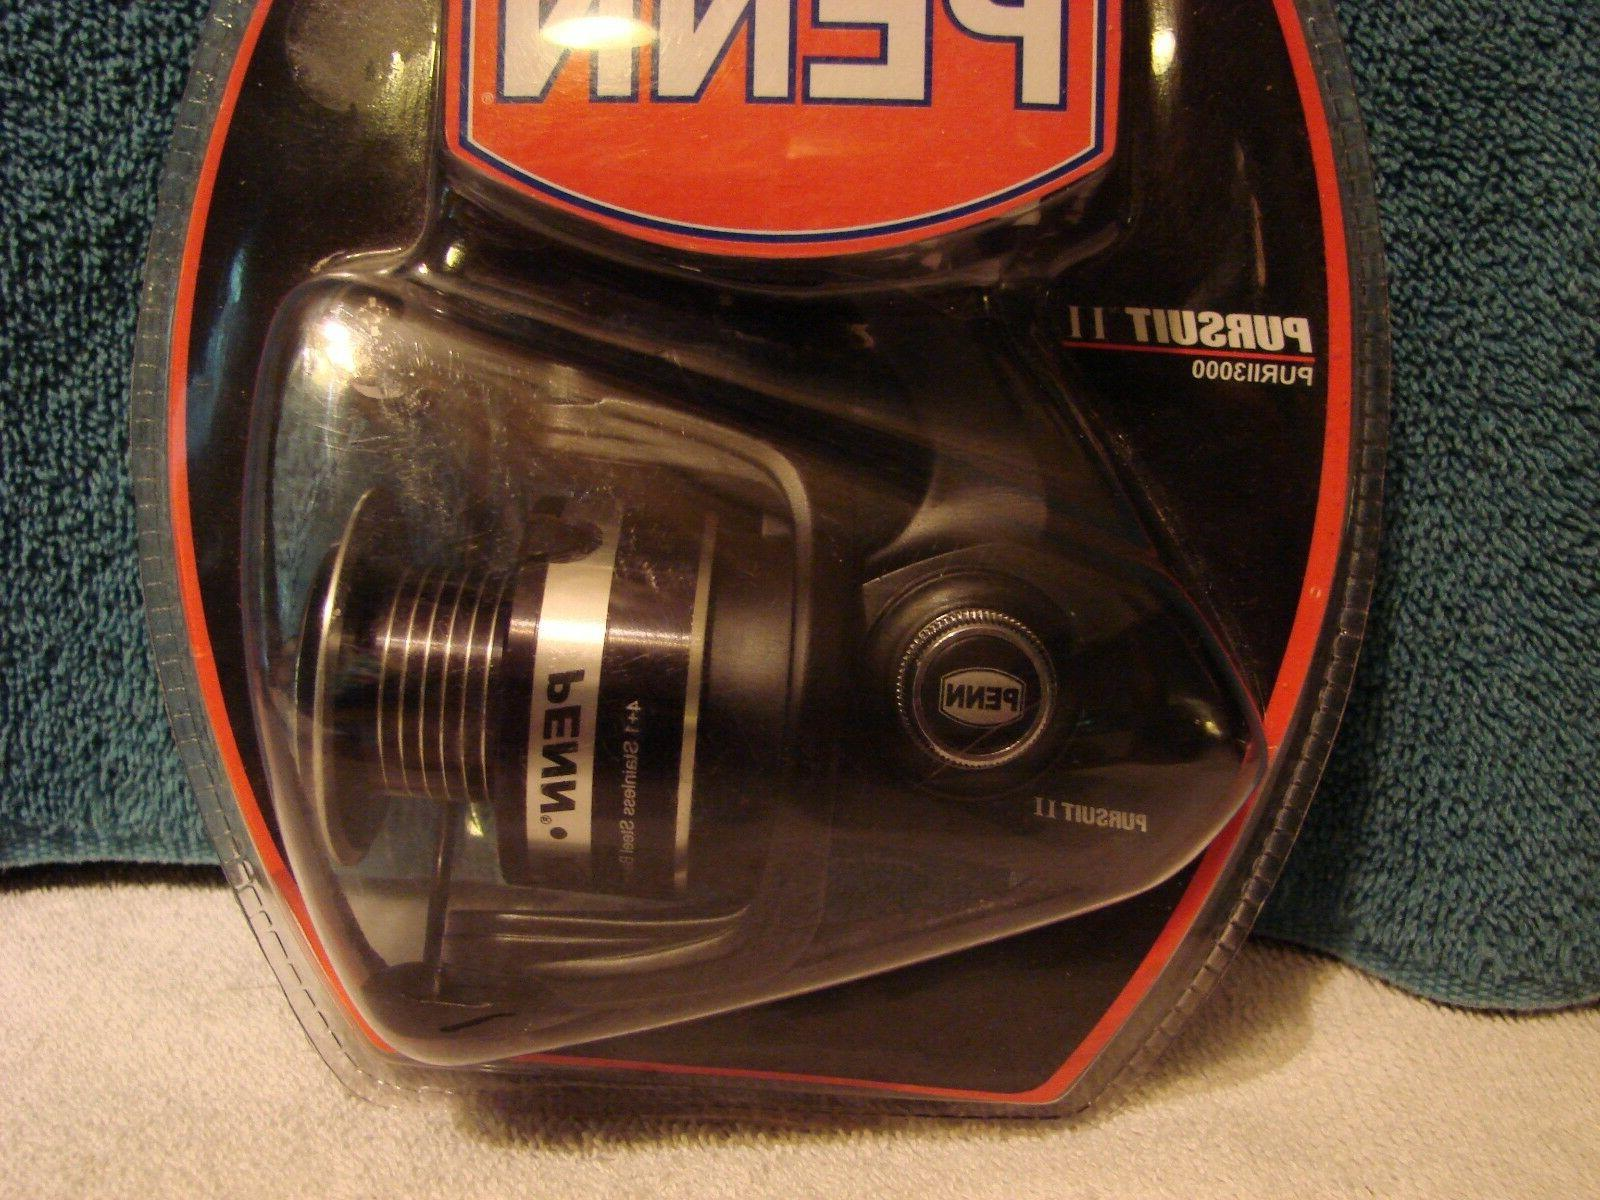 pursuit ii 3000 spinning fishing reel new